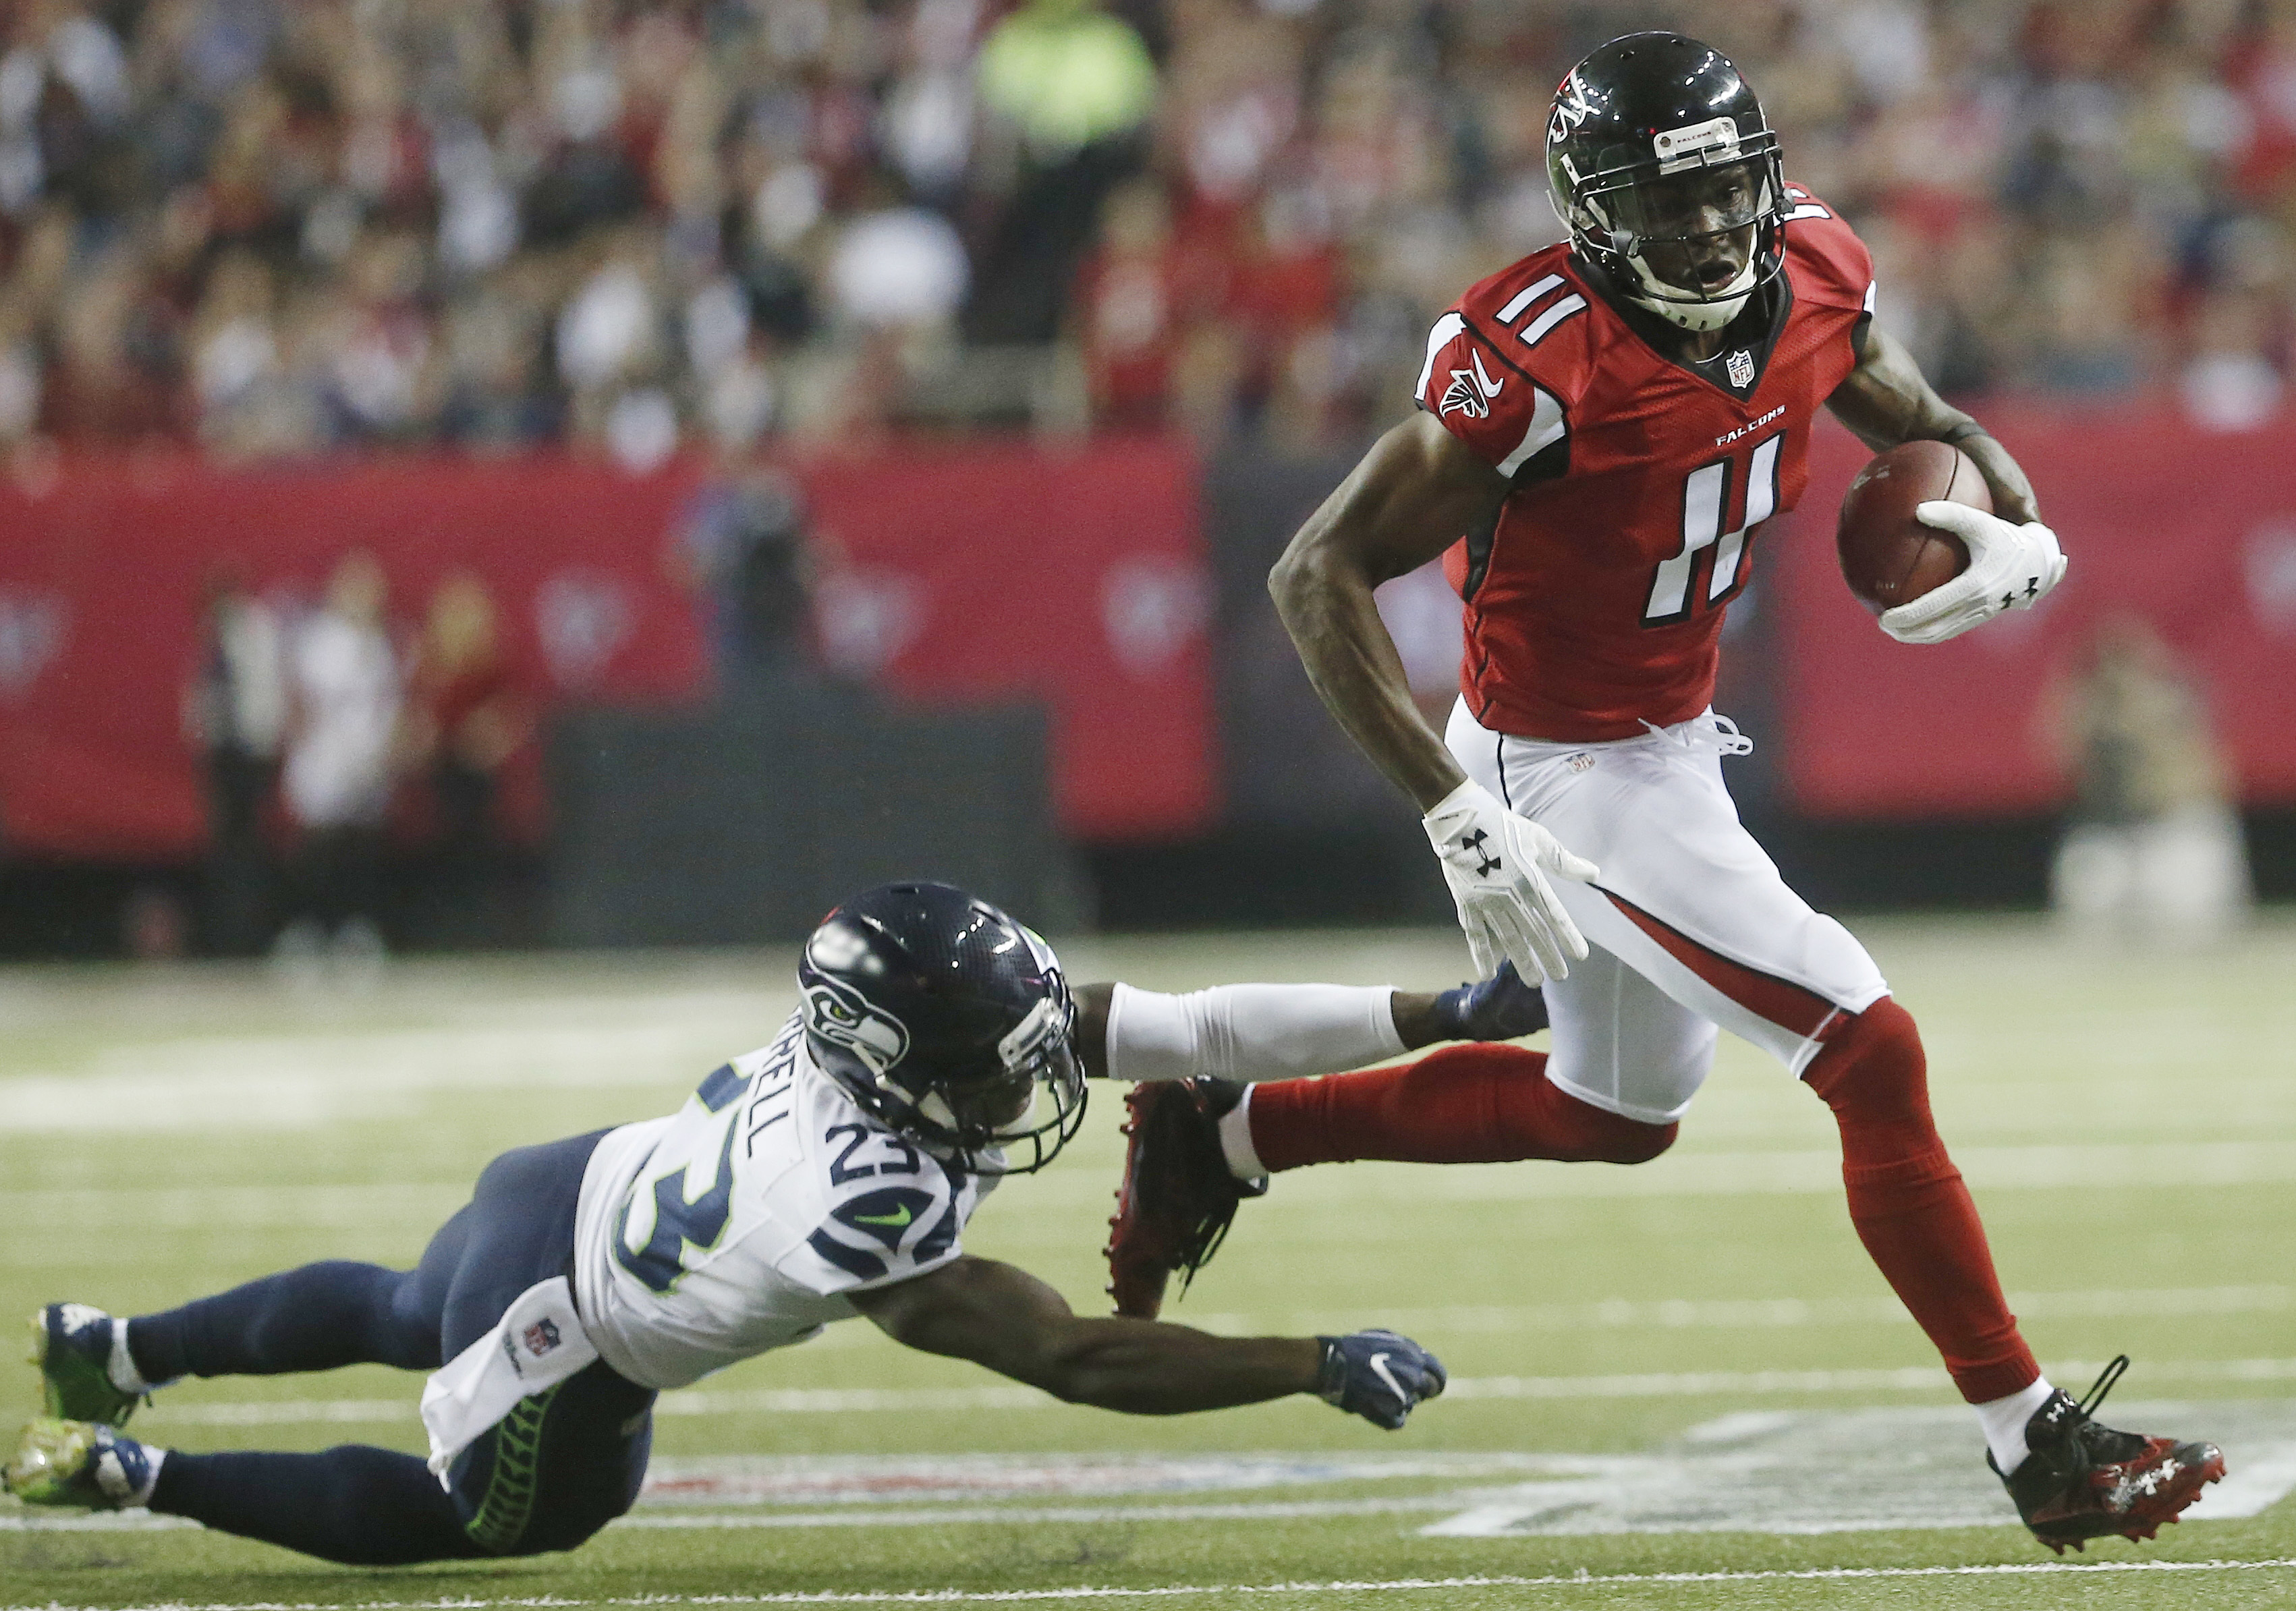 Atlanta Falcons wide receiver Julio Jones (11) runs past Seattle Seahawks free safety Steven Terrell (23) during the first half of an NFL football divisional football game, Saturday, Jan. 14, 2017, in Atlanta. (AP Photo/John Bazemore)